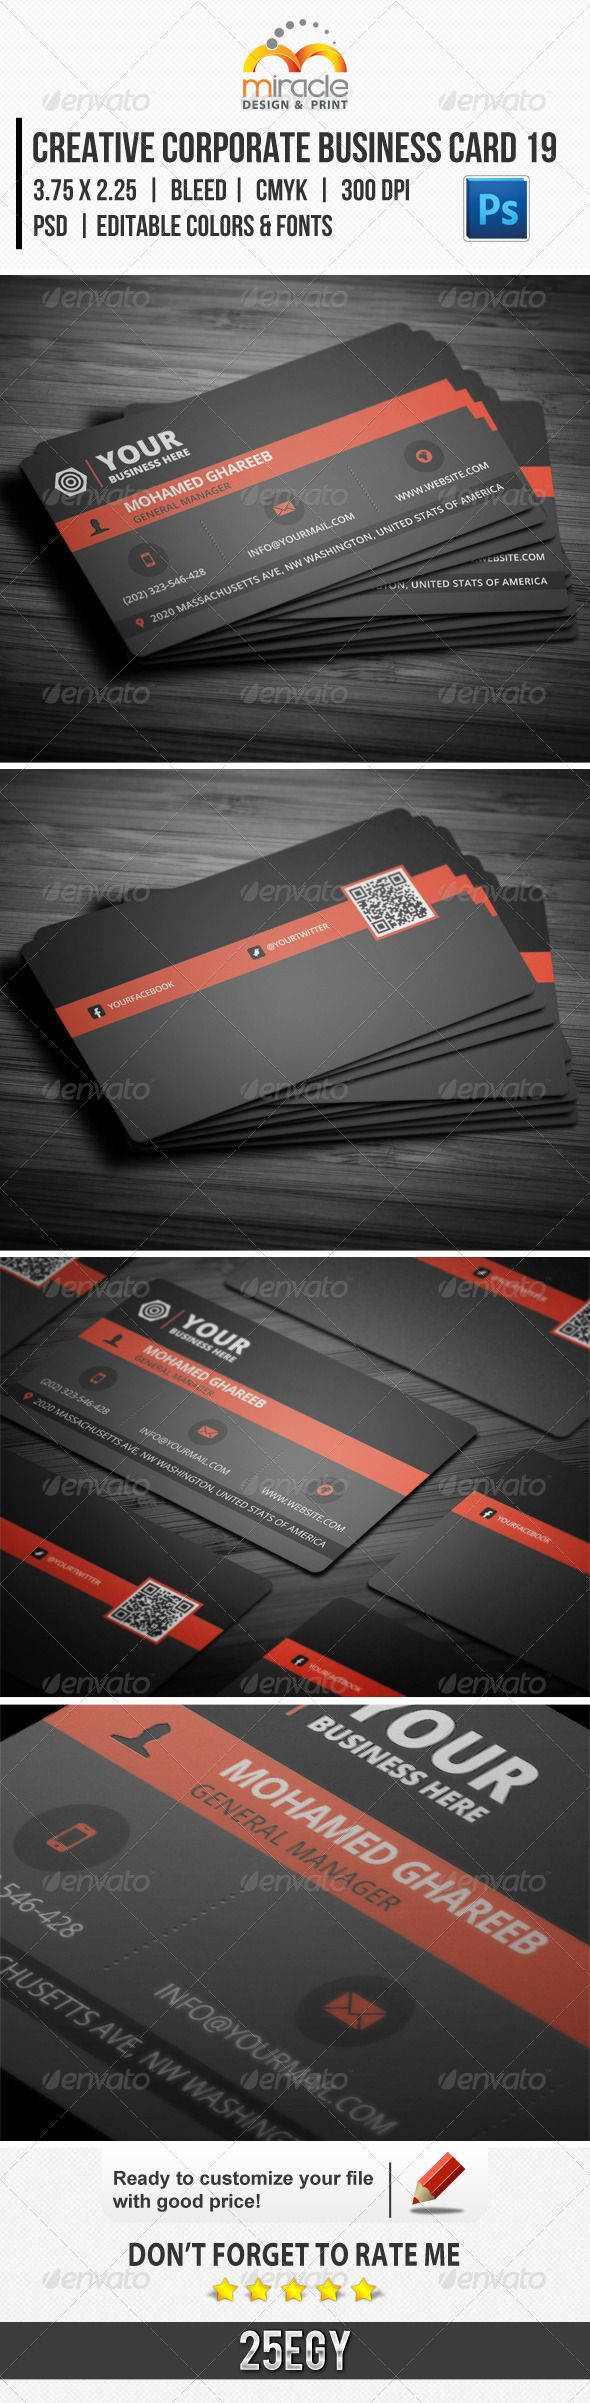 263 best business card images on pinterest business cards creative corporate business card 19 magicingreecefo Image collections